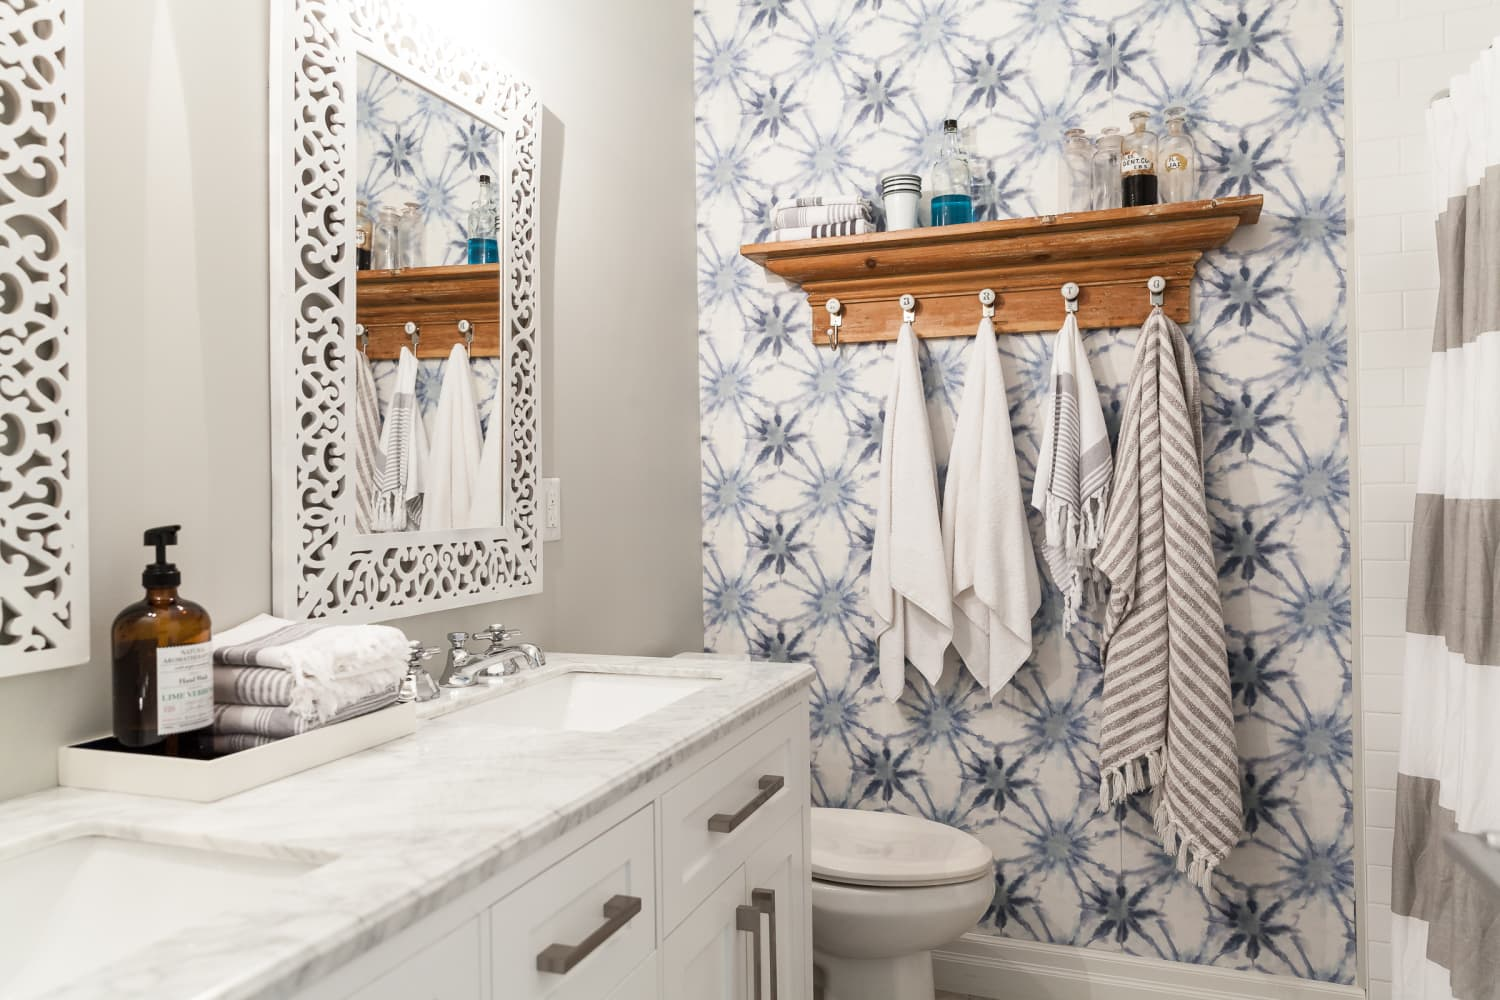 The 6 Best Bathroom Decorating Tips, According to You—Apartment Therapy Commenters!